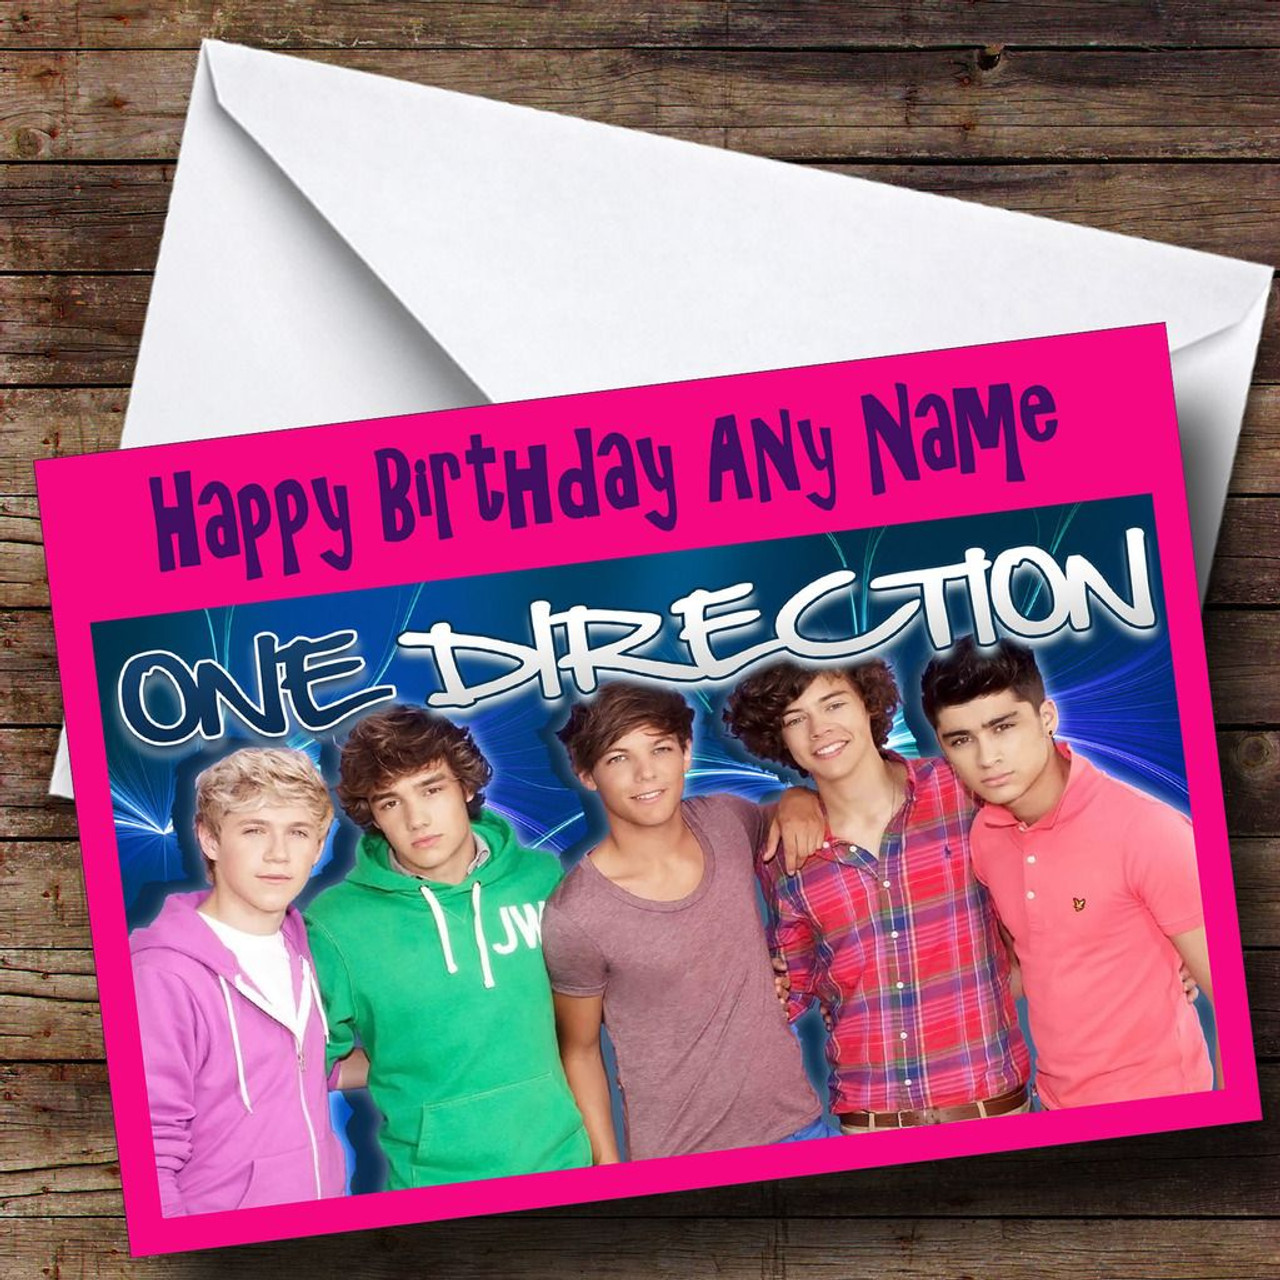 One Direction Personalised Birthday Card The Card Zoo – One Direction Personalised Birthday Card